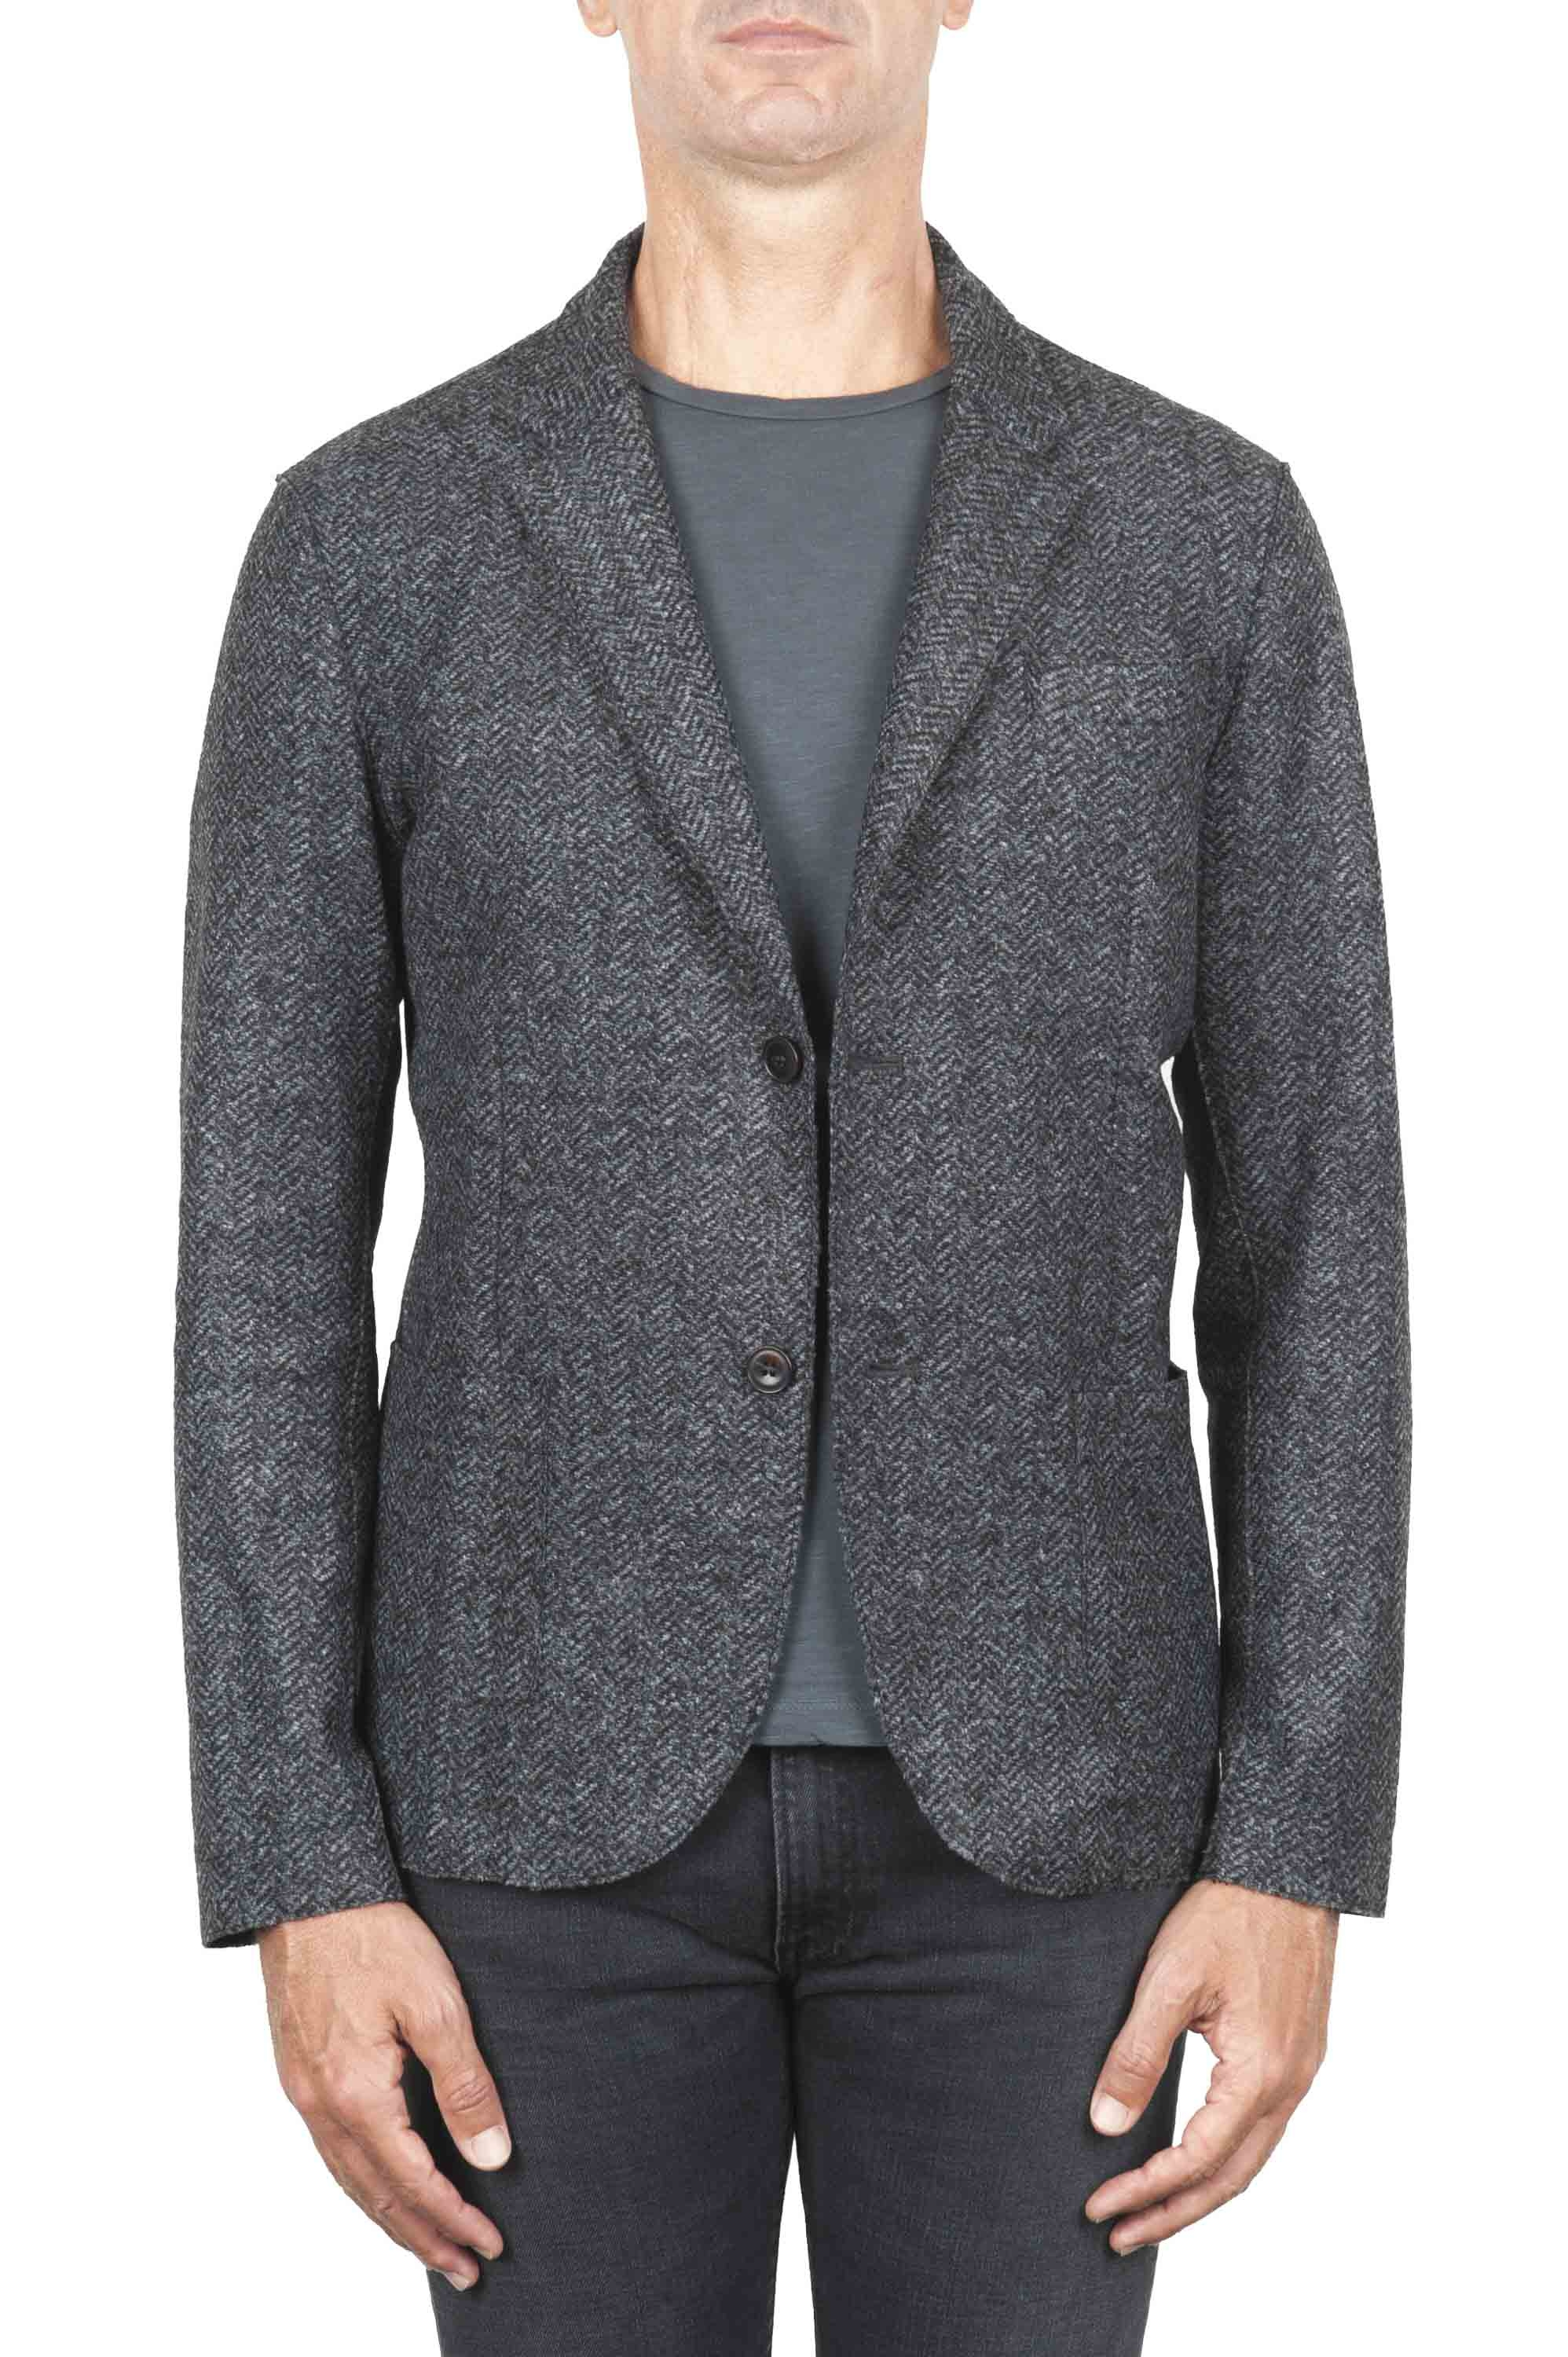 SBU 01339 Wool blend sport jacket unconstructed and unlined 01